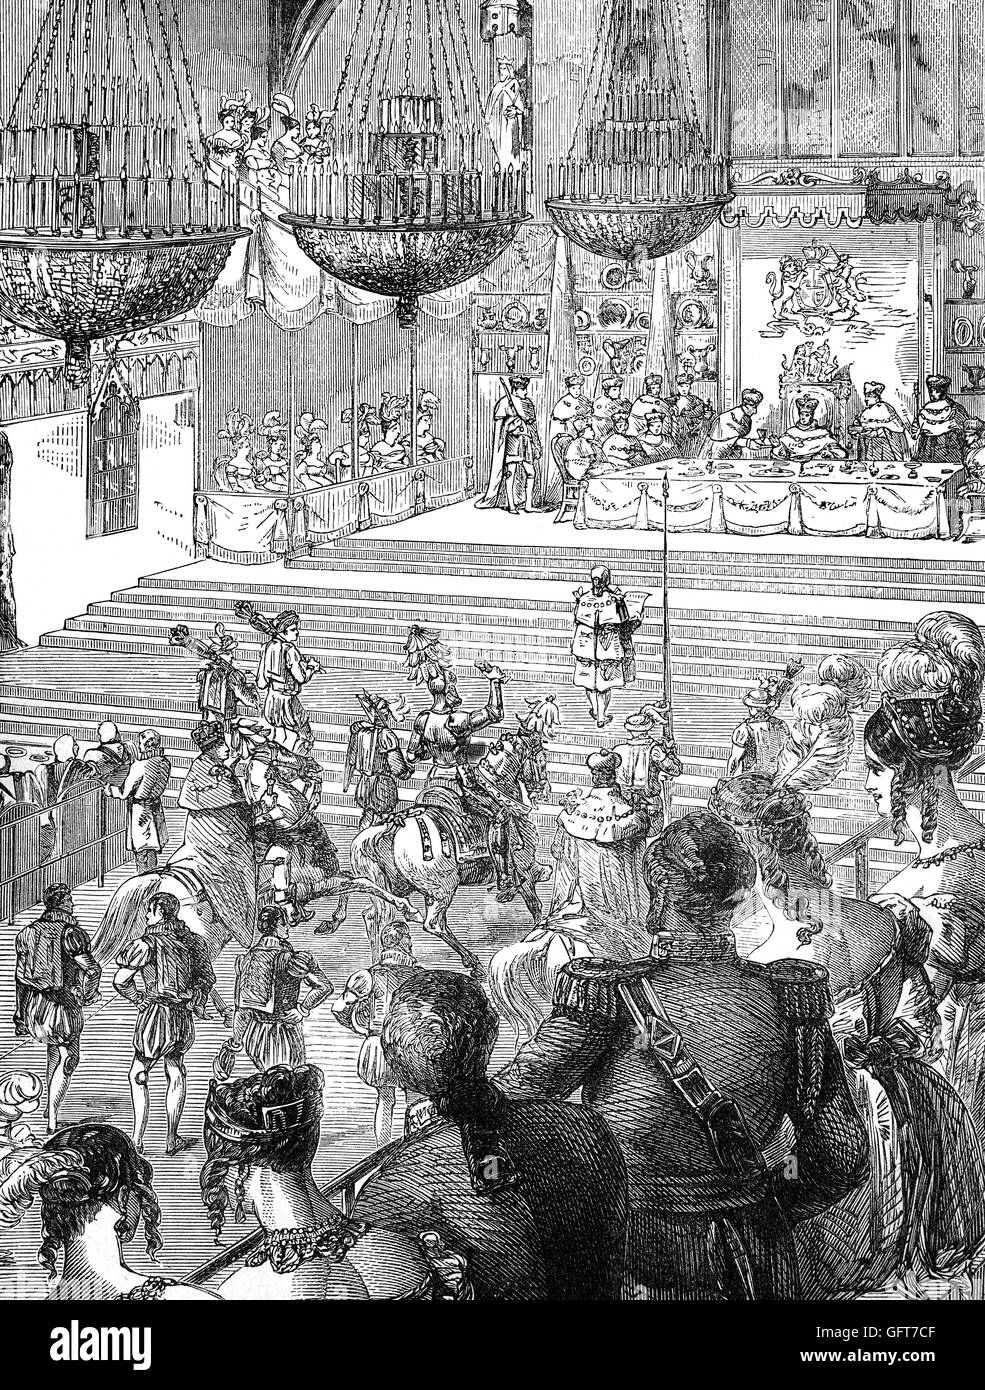 The Champions Challenge at the the Banquet following the 1821 Coronation of George IV held in Westminster Hall. - Stock Image